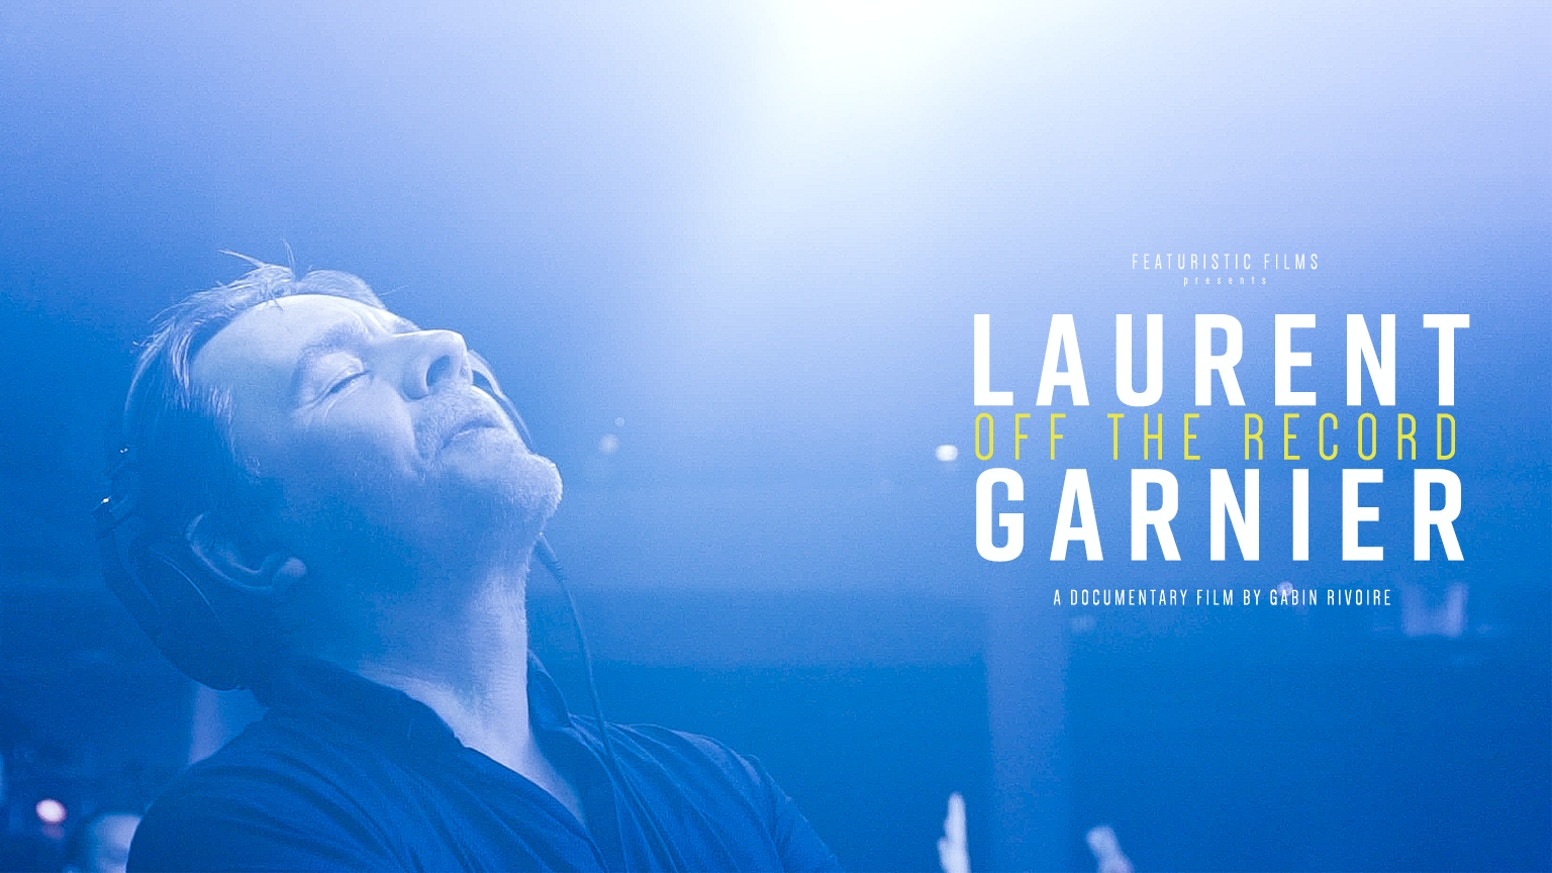 Laurent Garnier Off The Record By Featuristic Films